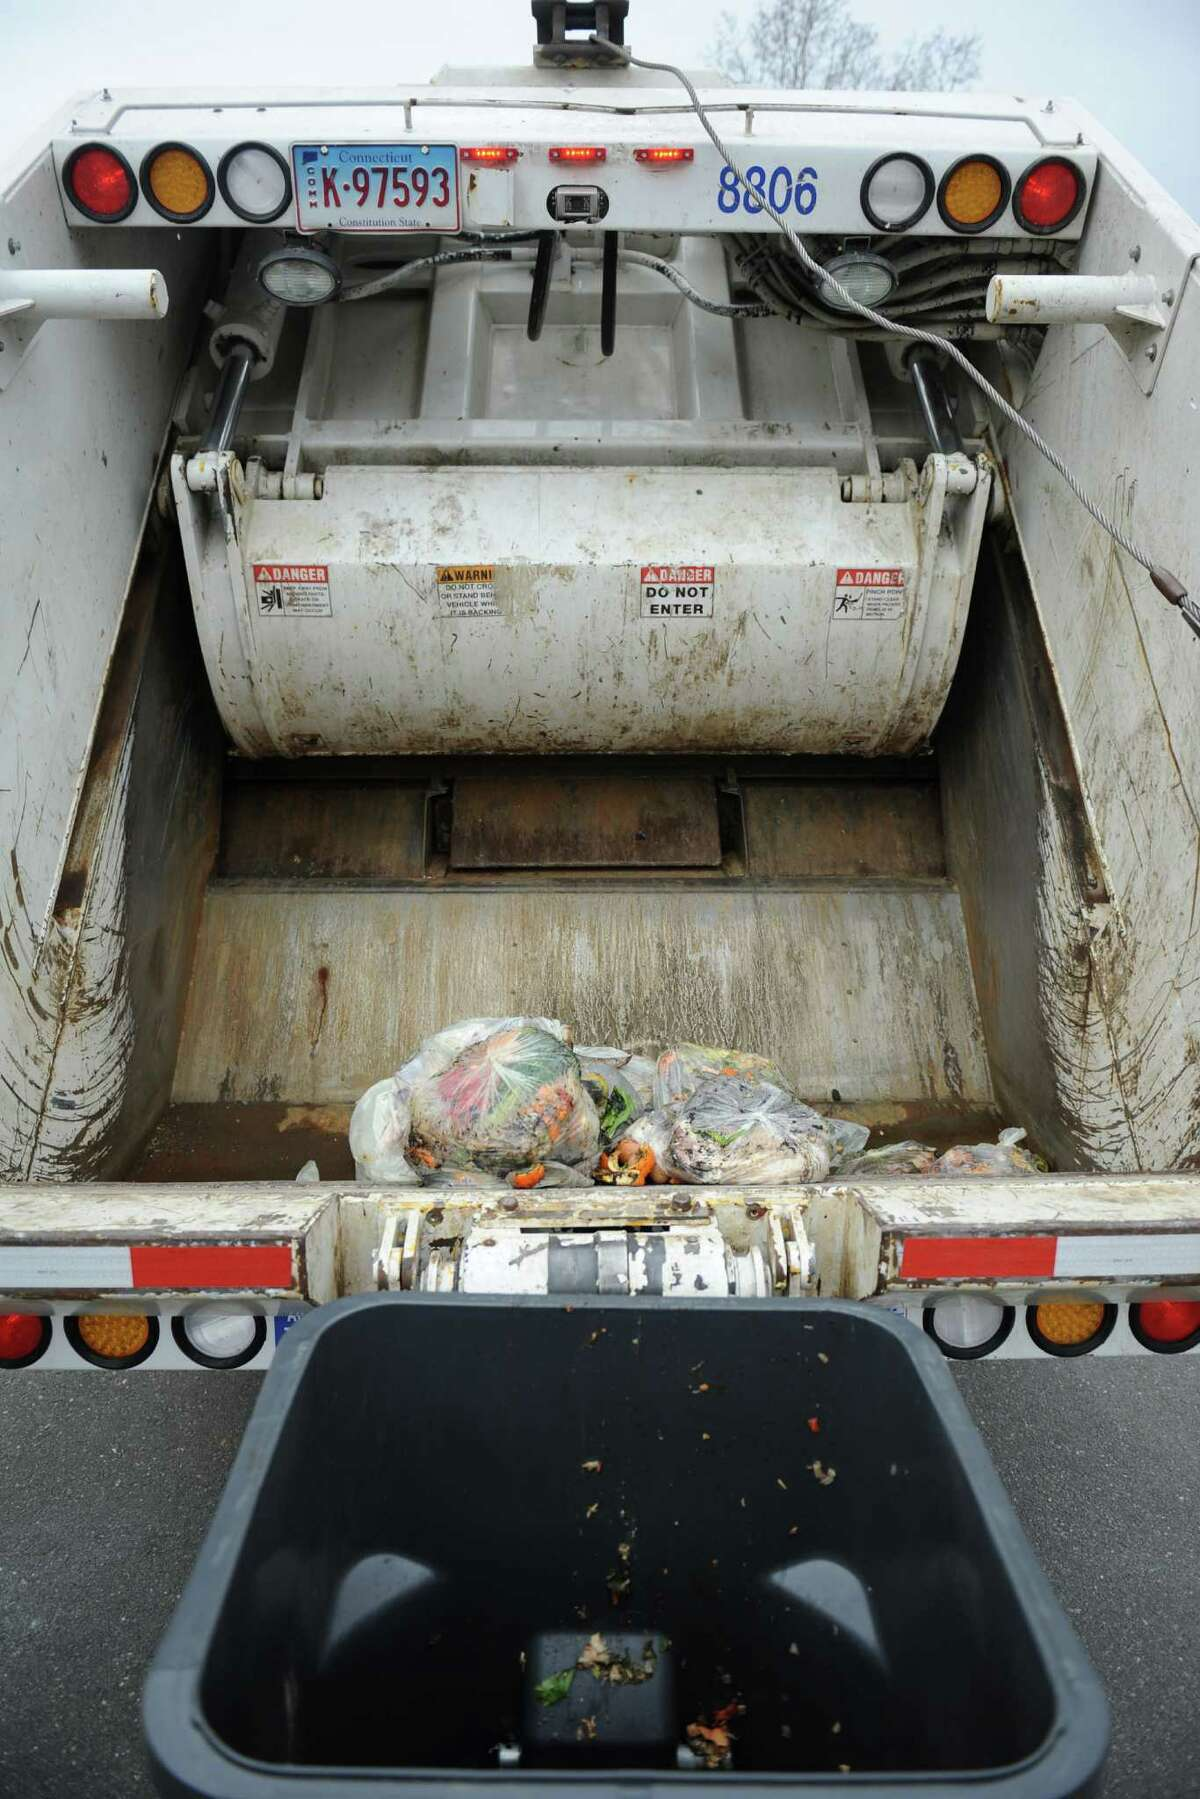 Organic waste is dumped into a truck during the kick-off of the Curbside Organic Pilot Program at The Burnham School in Bridgewater, Conn. Friday, April 4, 2014. The school, in cooperation with All American Waste and the Housatonic Resources Recovery Authority, began the first program of its kind in the state in 2014.